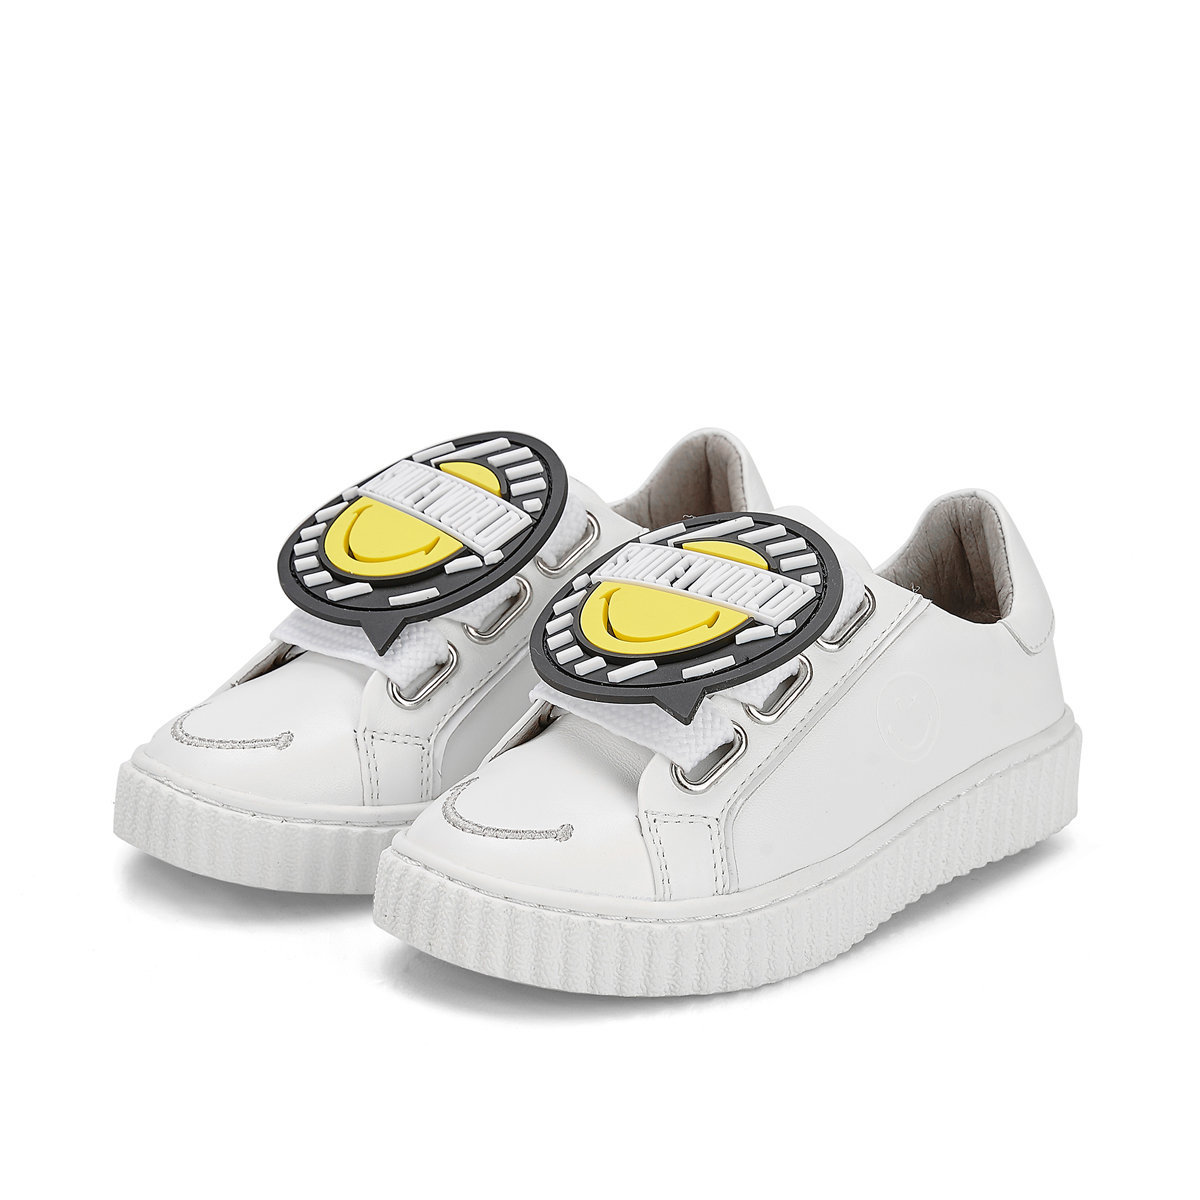 Smiley x HOUSE OF AVENUES - Kids sneaker - 4312